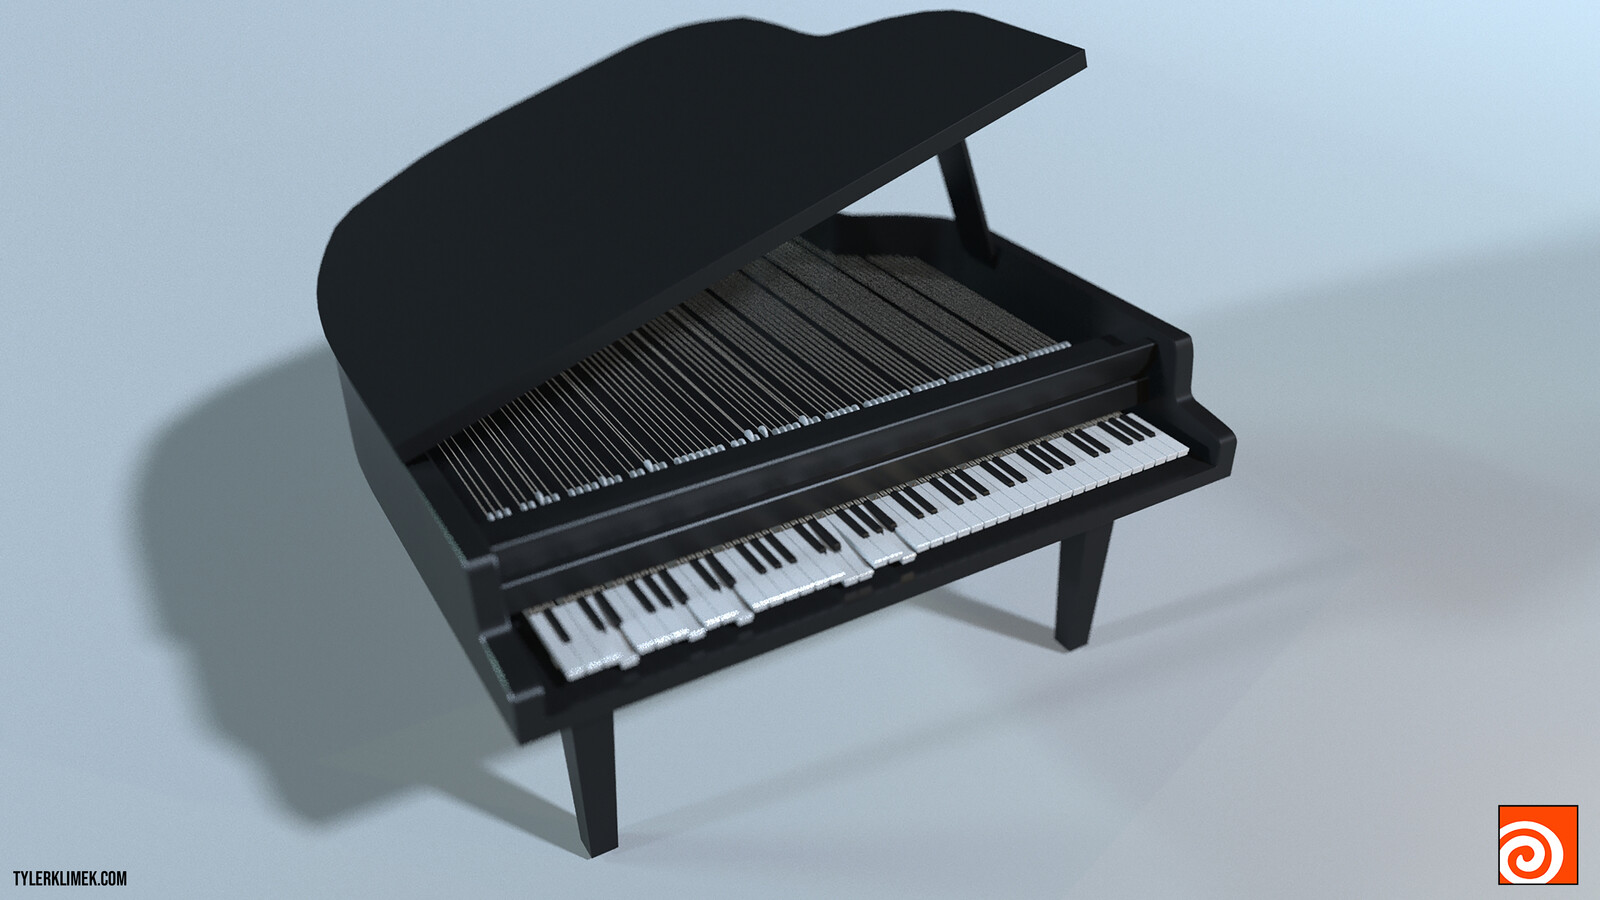 Procedural 3D Piano Animated by Music